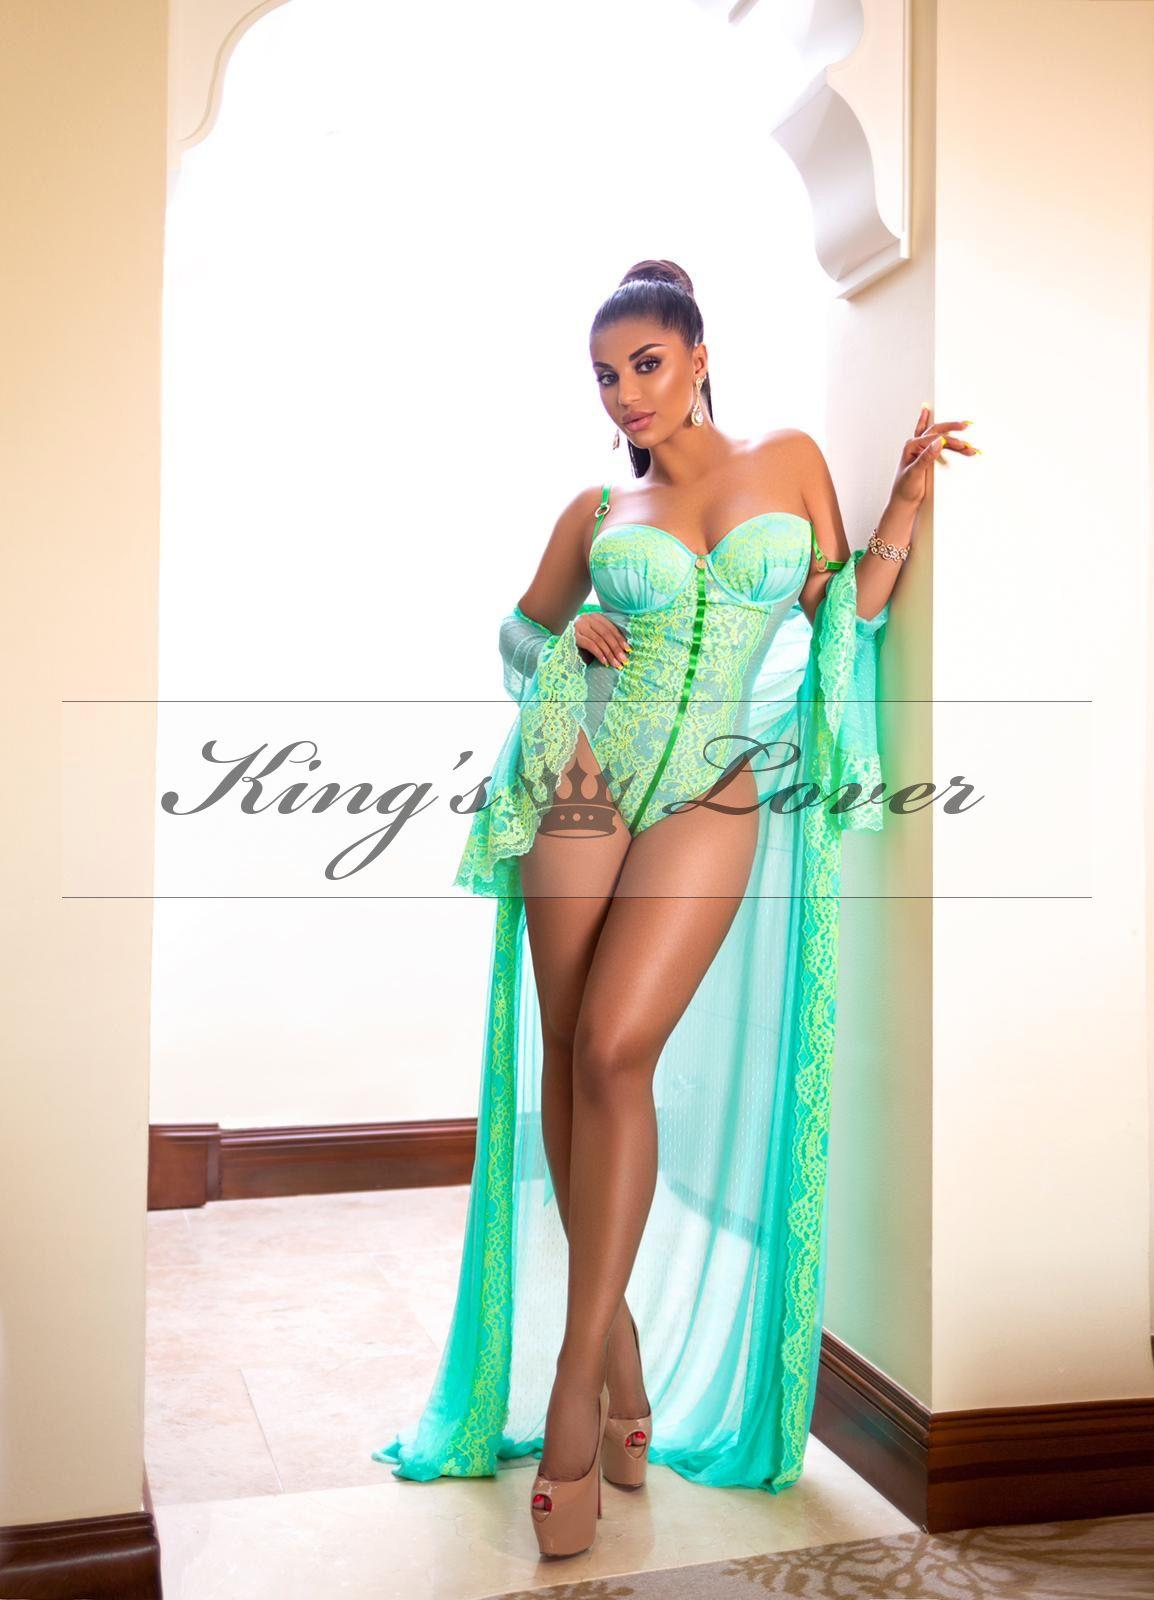 Samantha from King's Lover